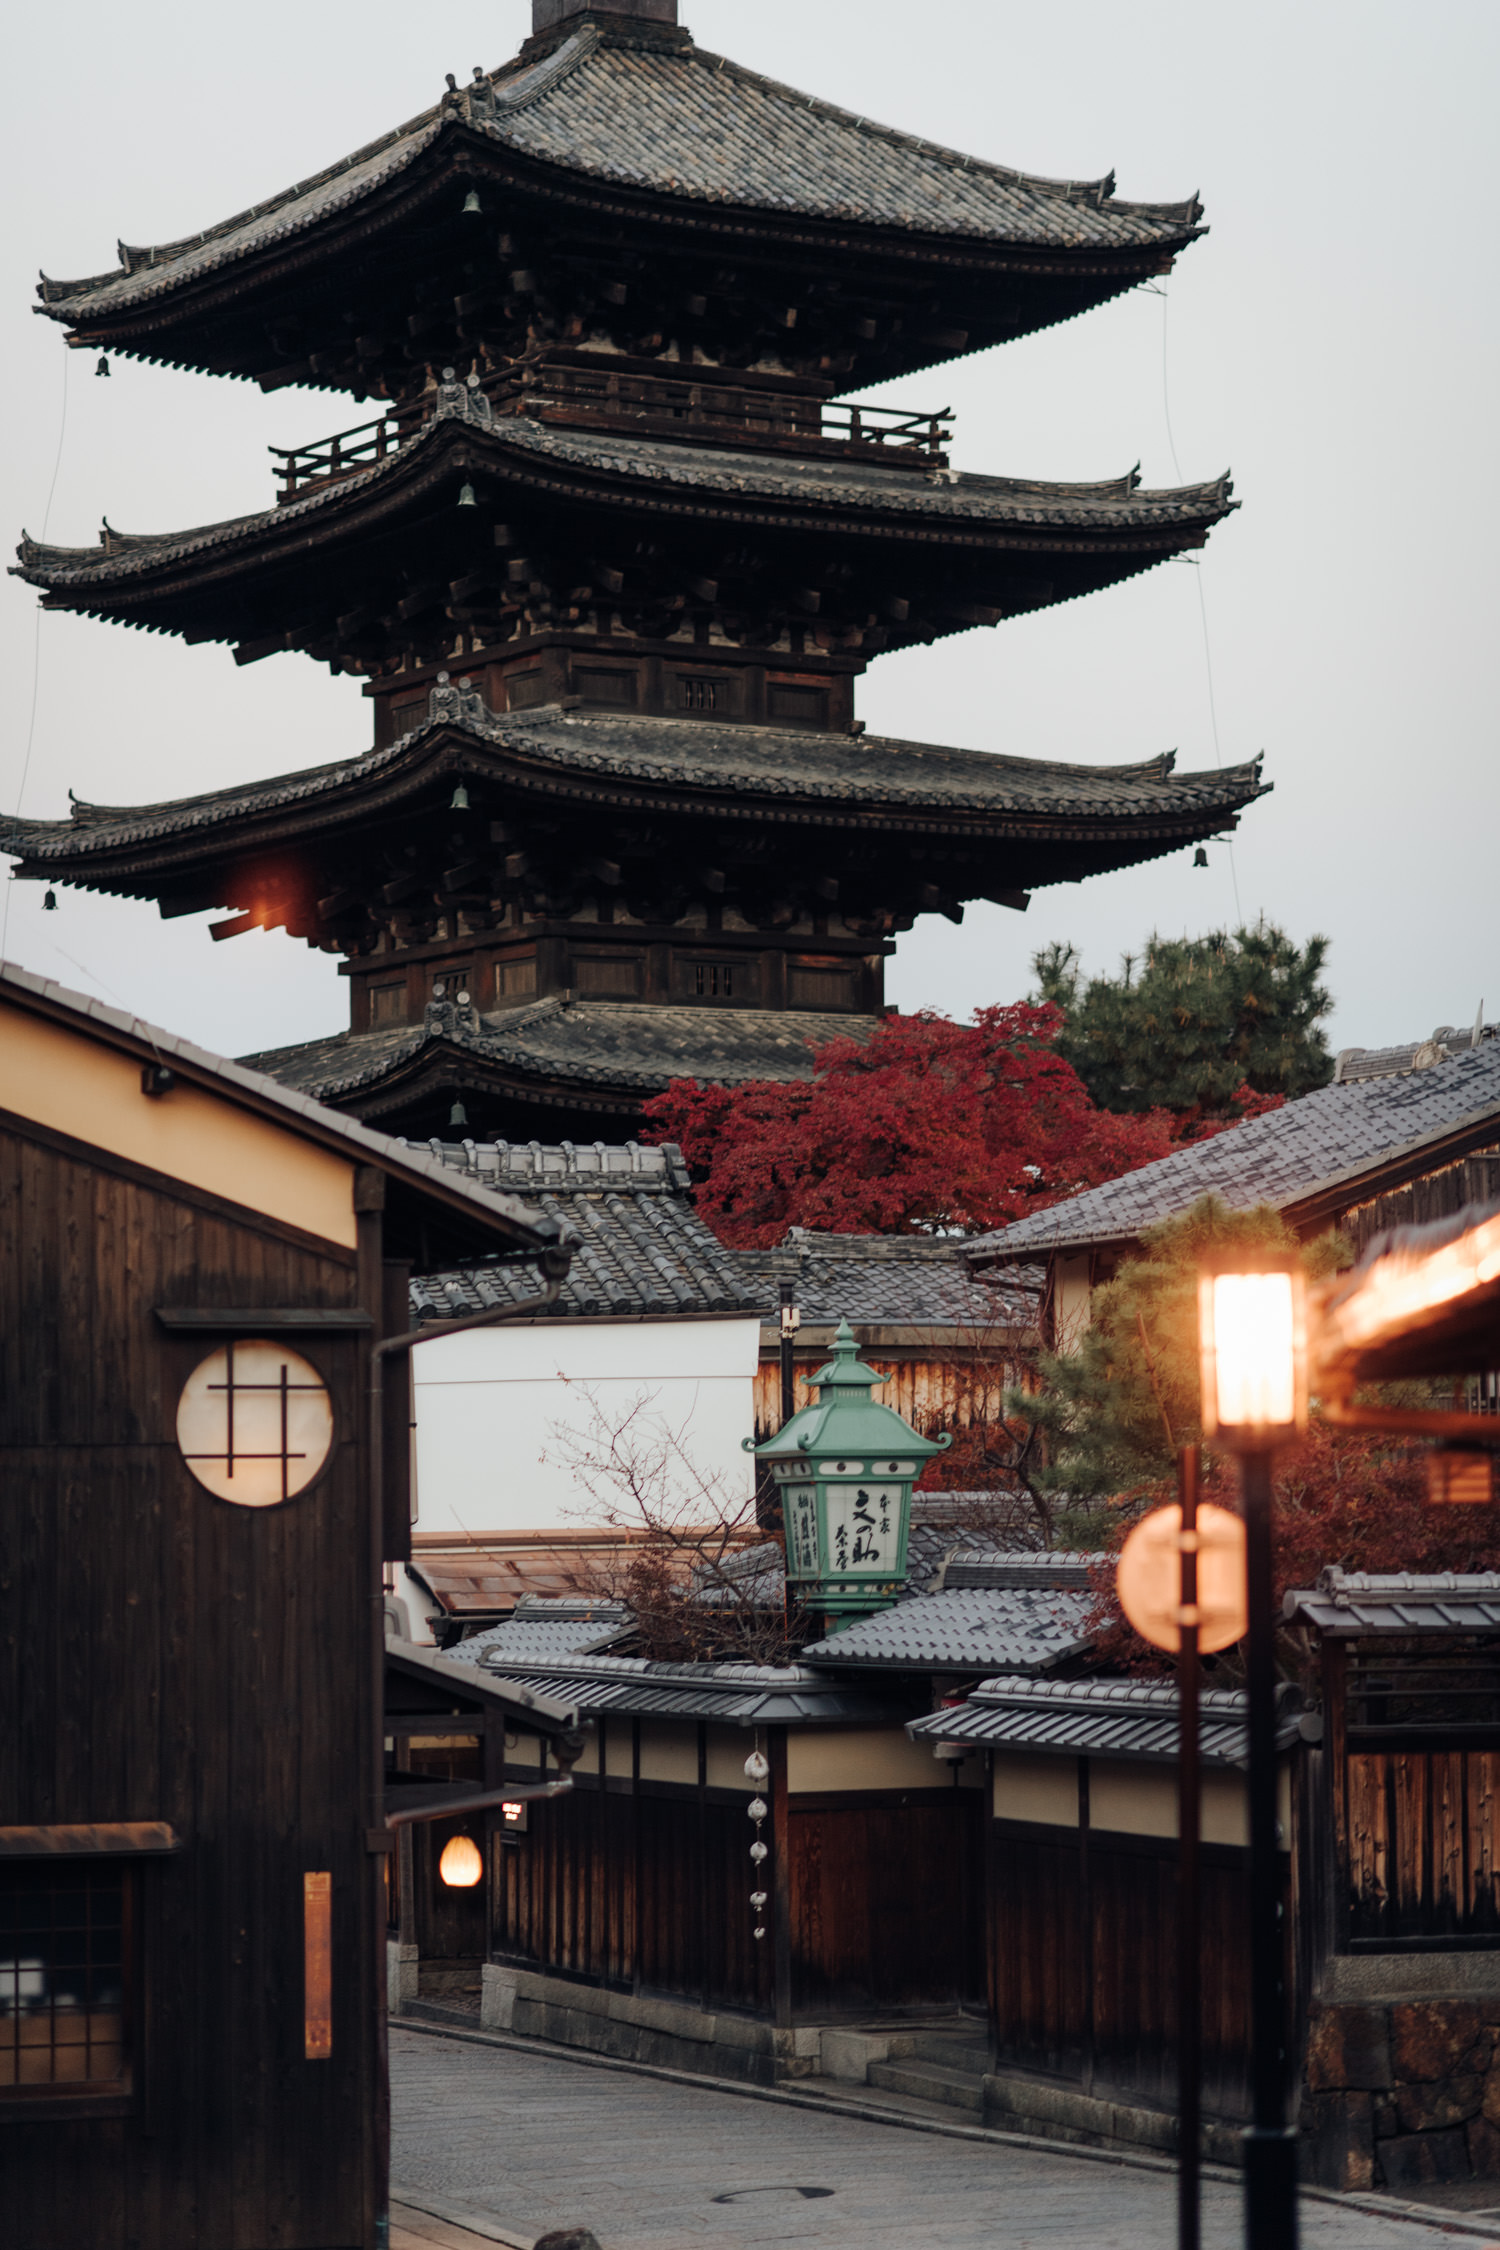 Yasaka Pagoda just before dawn in Kyoto Japan